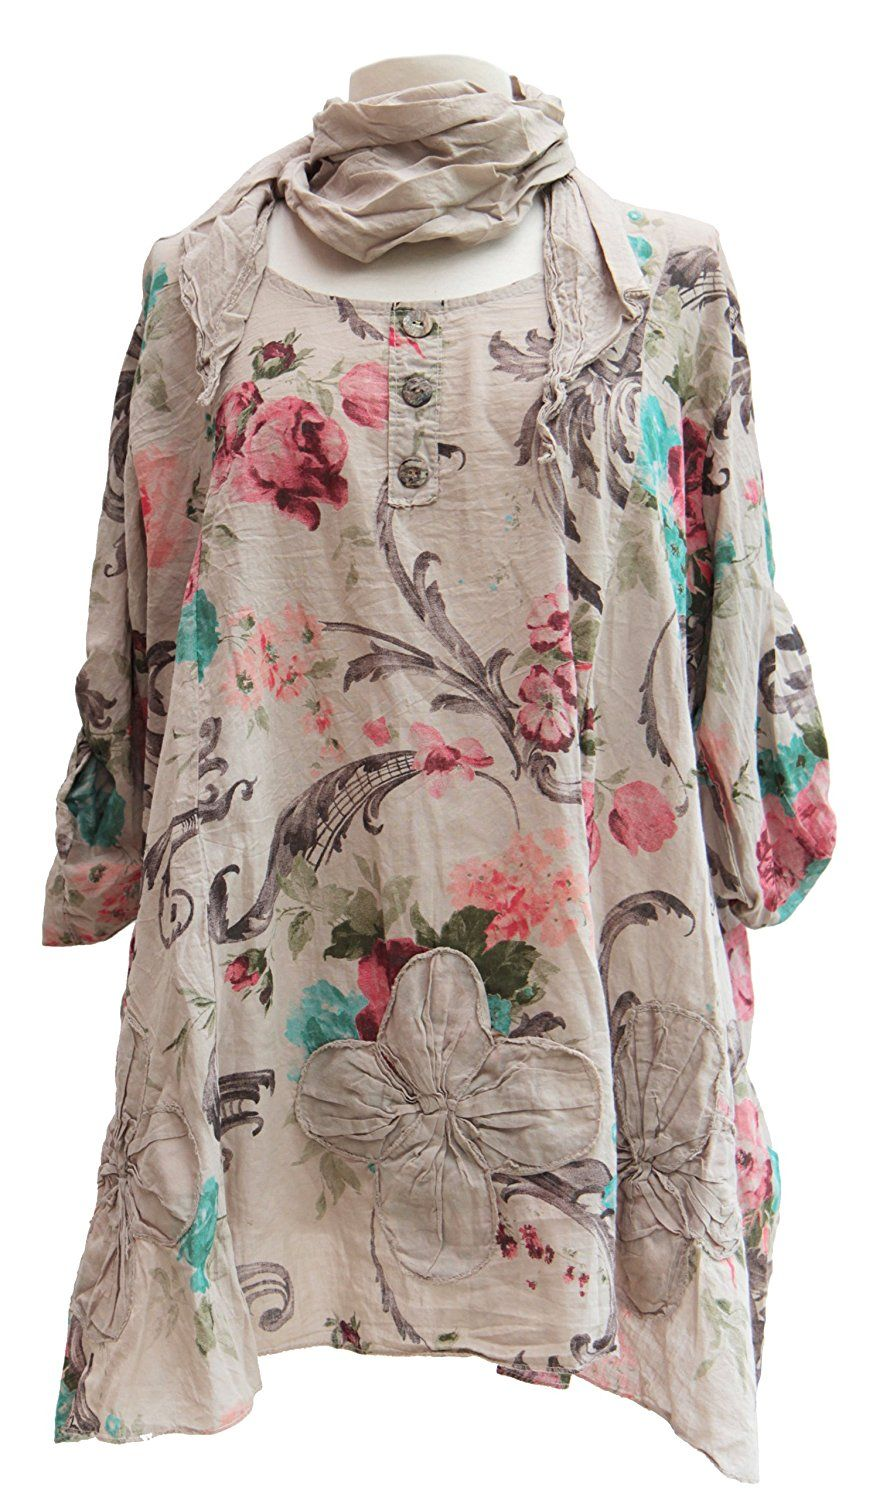 bb066b5d253 Ladies Womens Italian Lagenlook Quirky Floral Print Tunic Top Scarf Set  Shirt Cotton One Size Plus Blouse (One Size (Plus), Beige): Amazon.co.uk:  Clothing